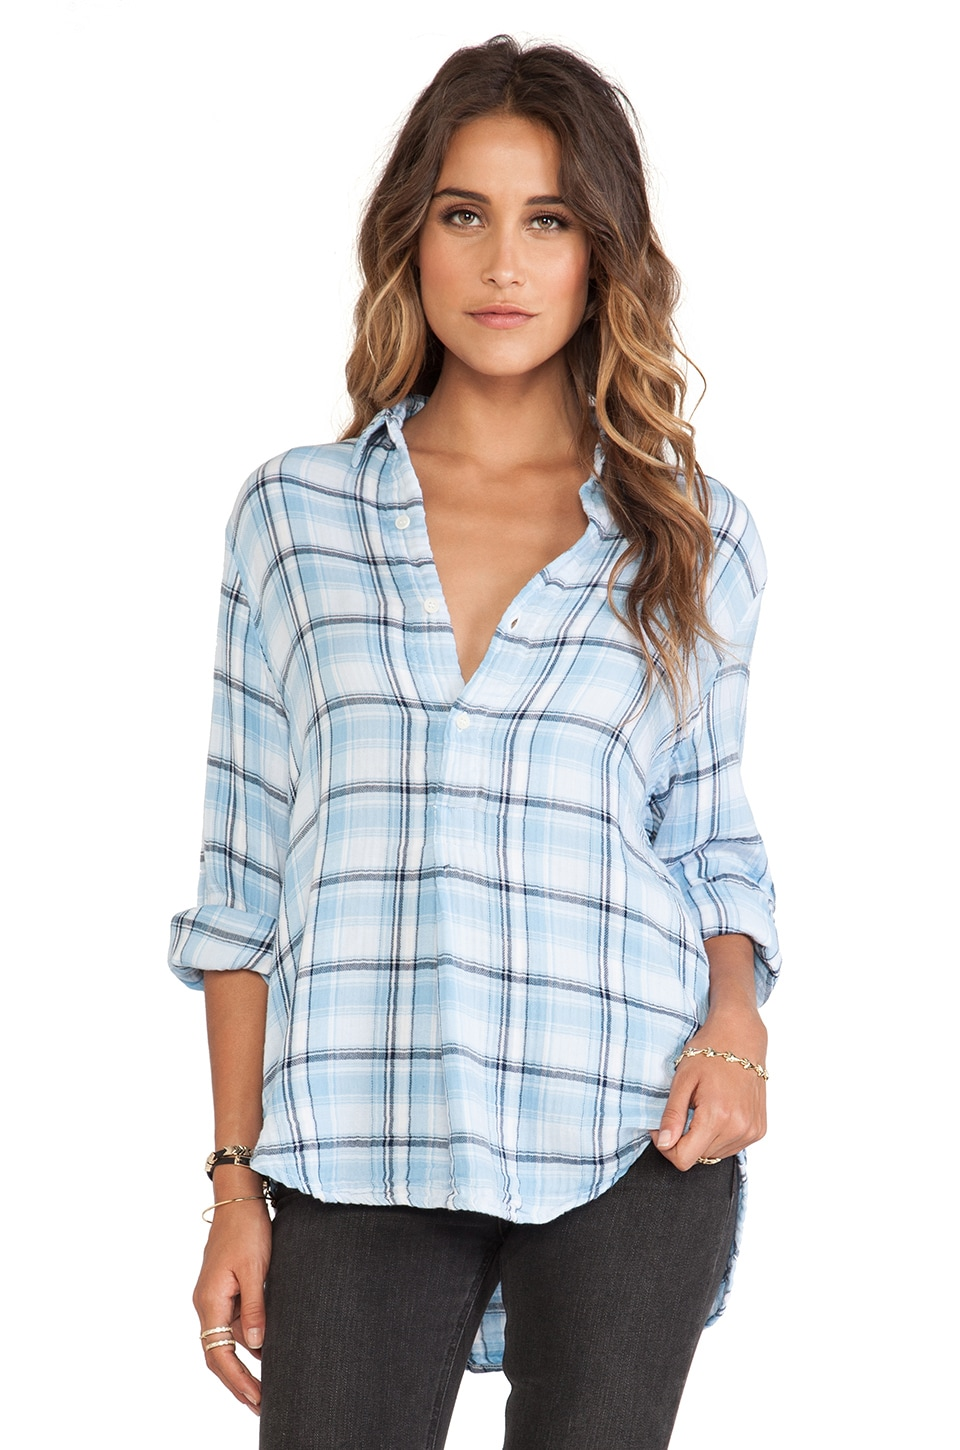 CP SHADES Tennessee Plaid Shirt in Light Blue